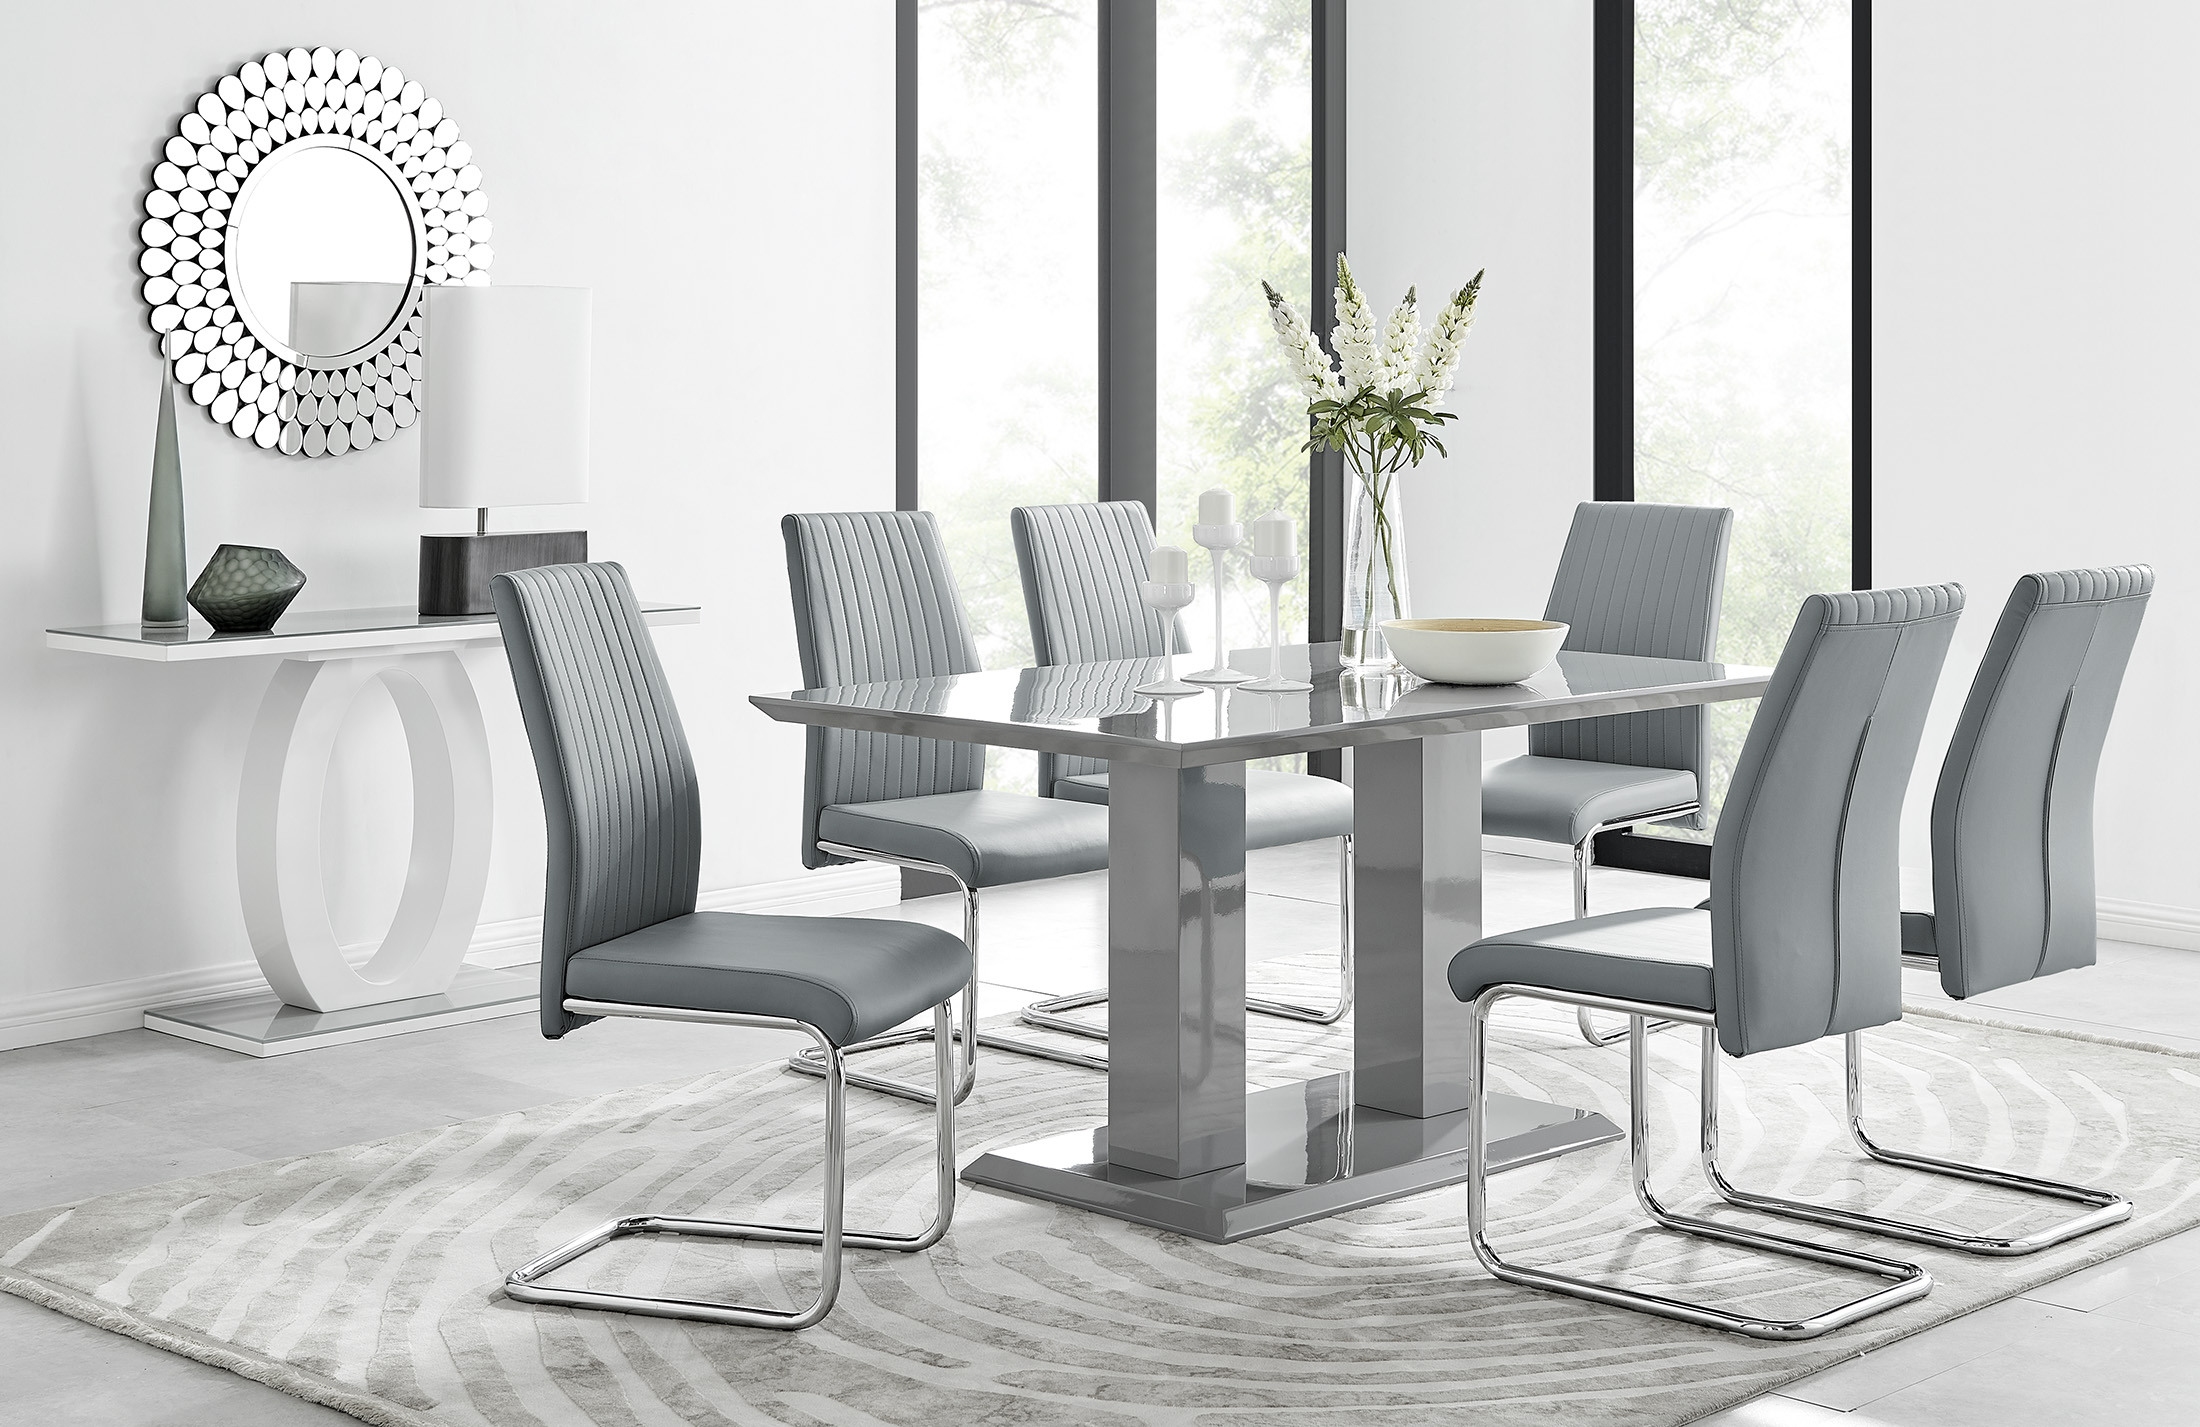 Imperia Grey Dining Table 6 Lorenzo, Modern Dining Room Table And Chairs Set